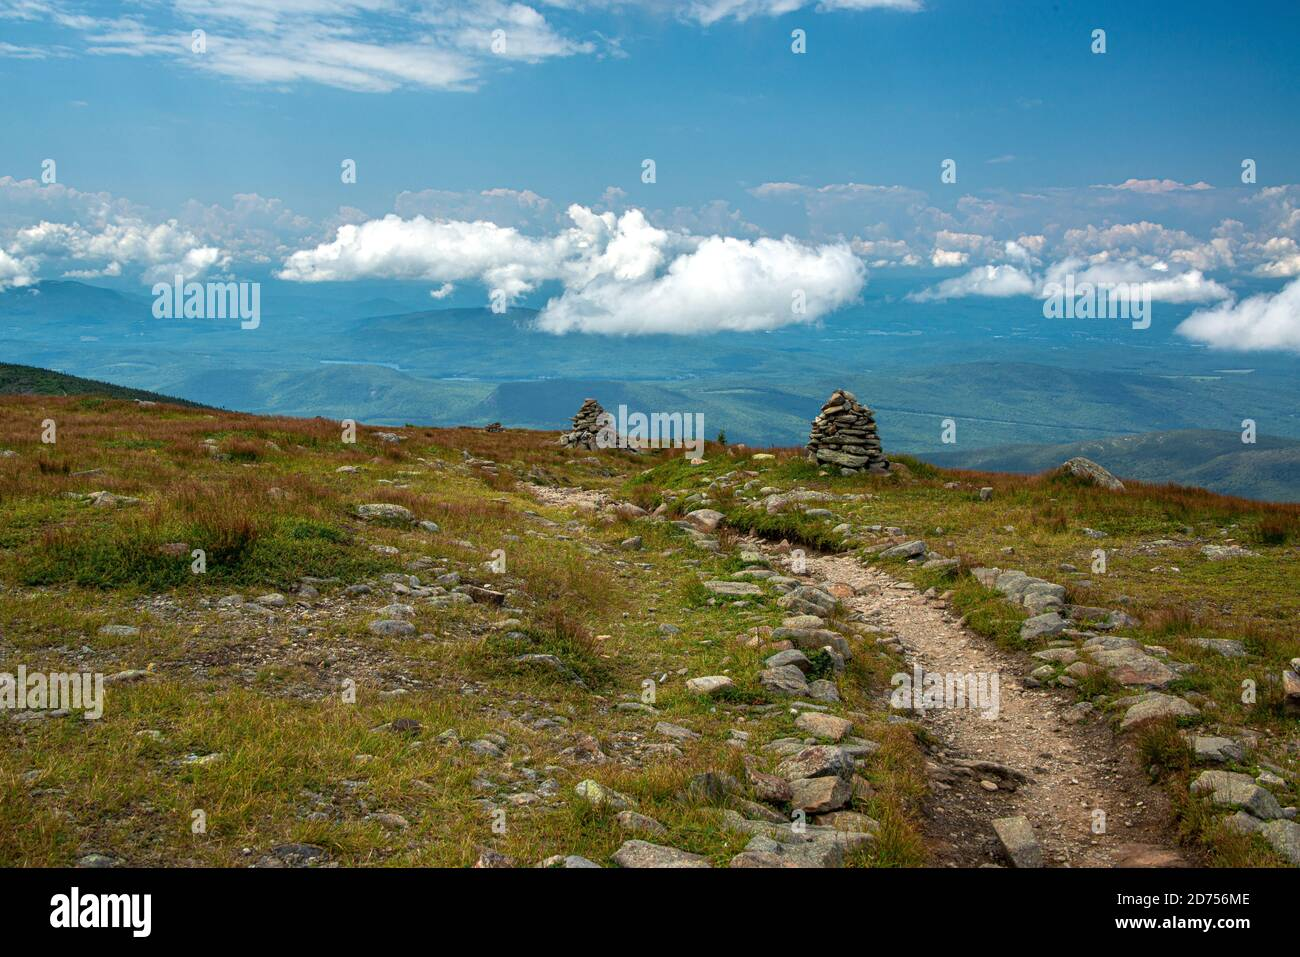 Clouds Over The White Mountains In New Hampshire Stock Photo